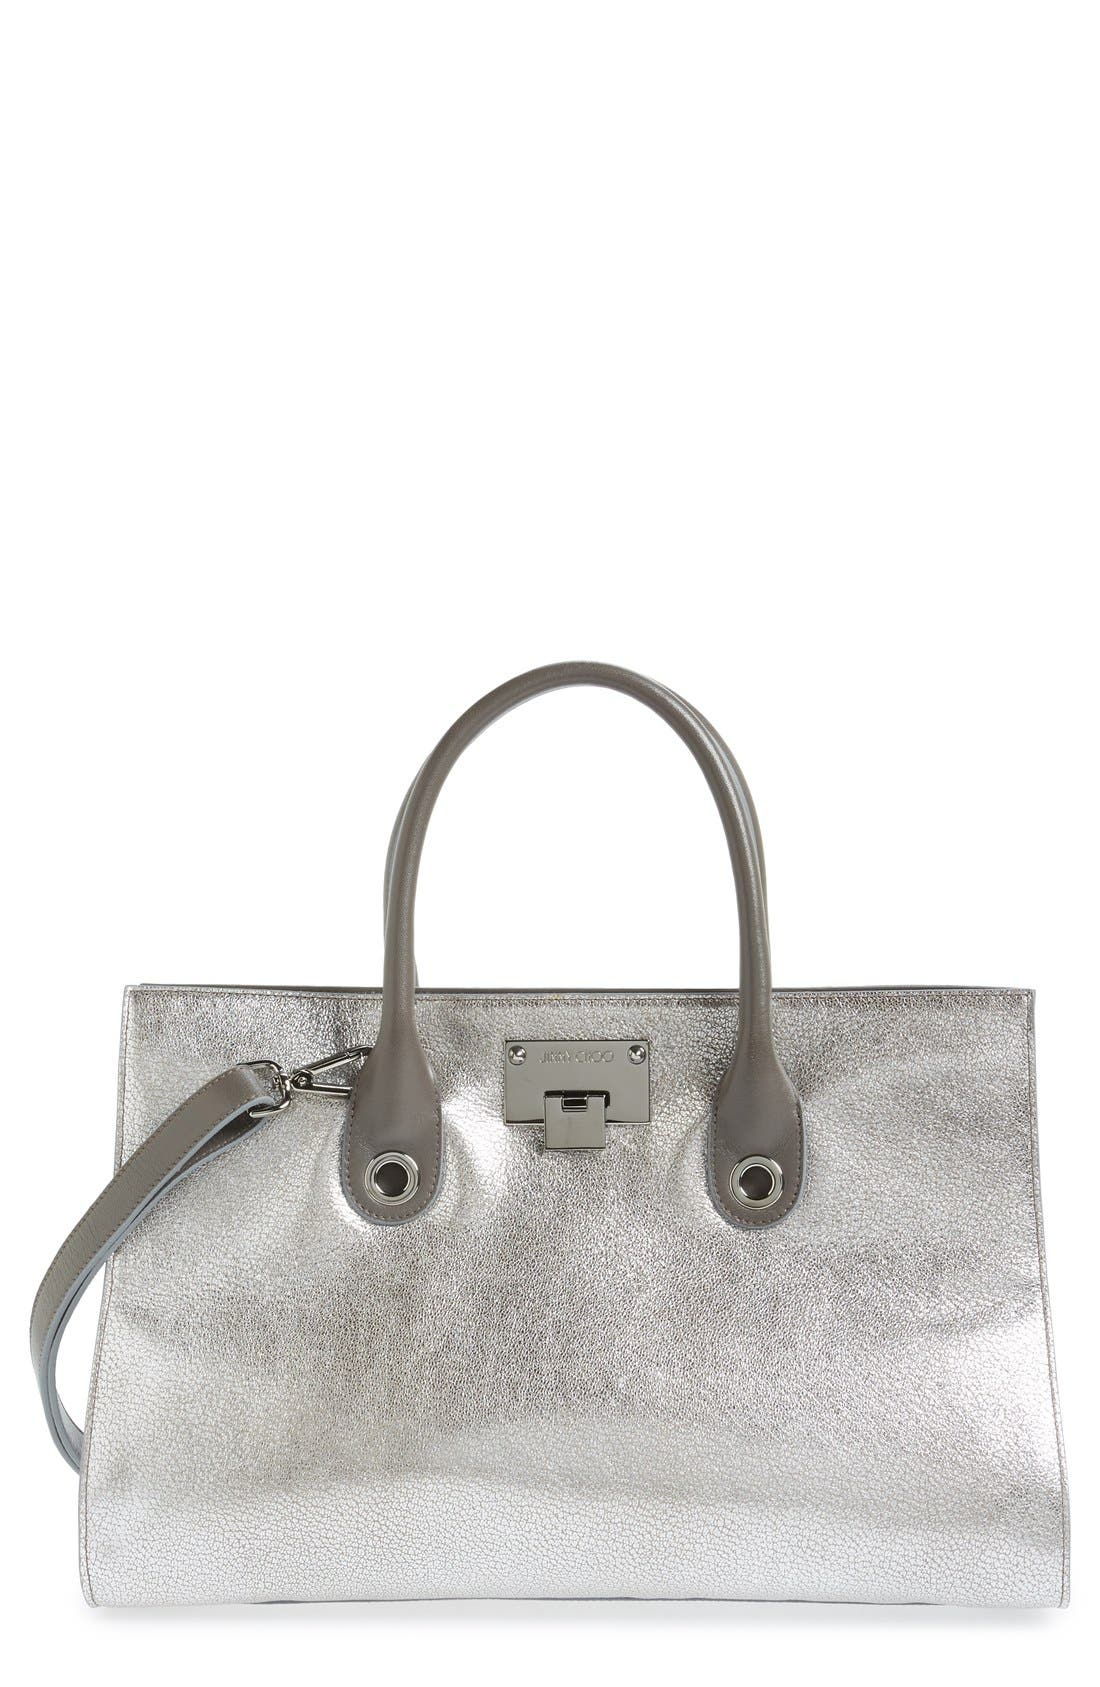 Alternate Image 1 Selected - Jimmy Choo 'Riley' Metallic Goatskin Leather Tote